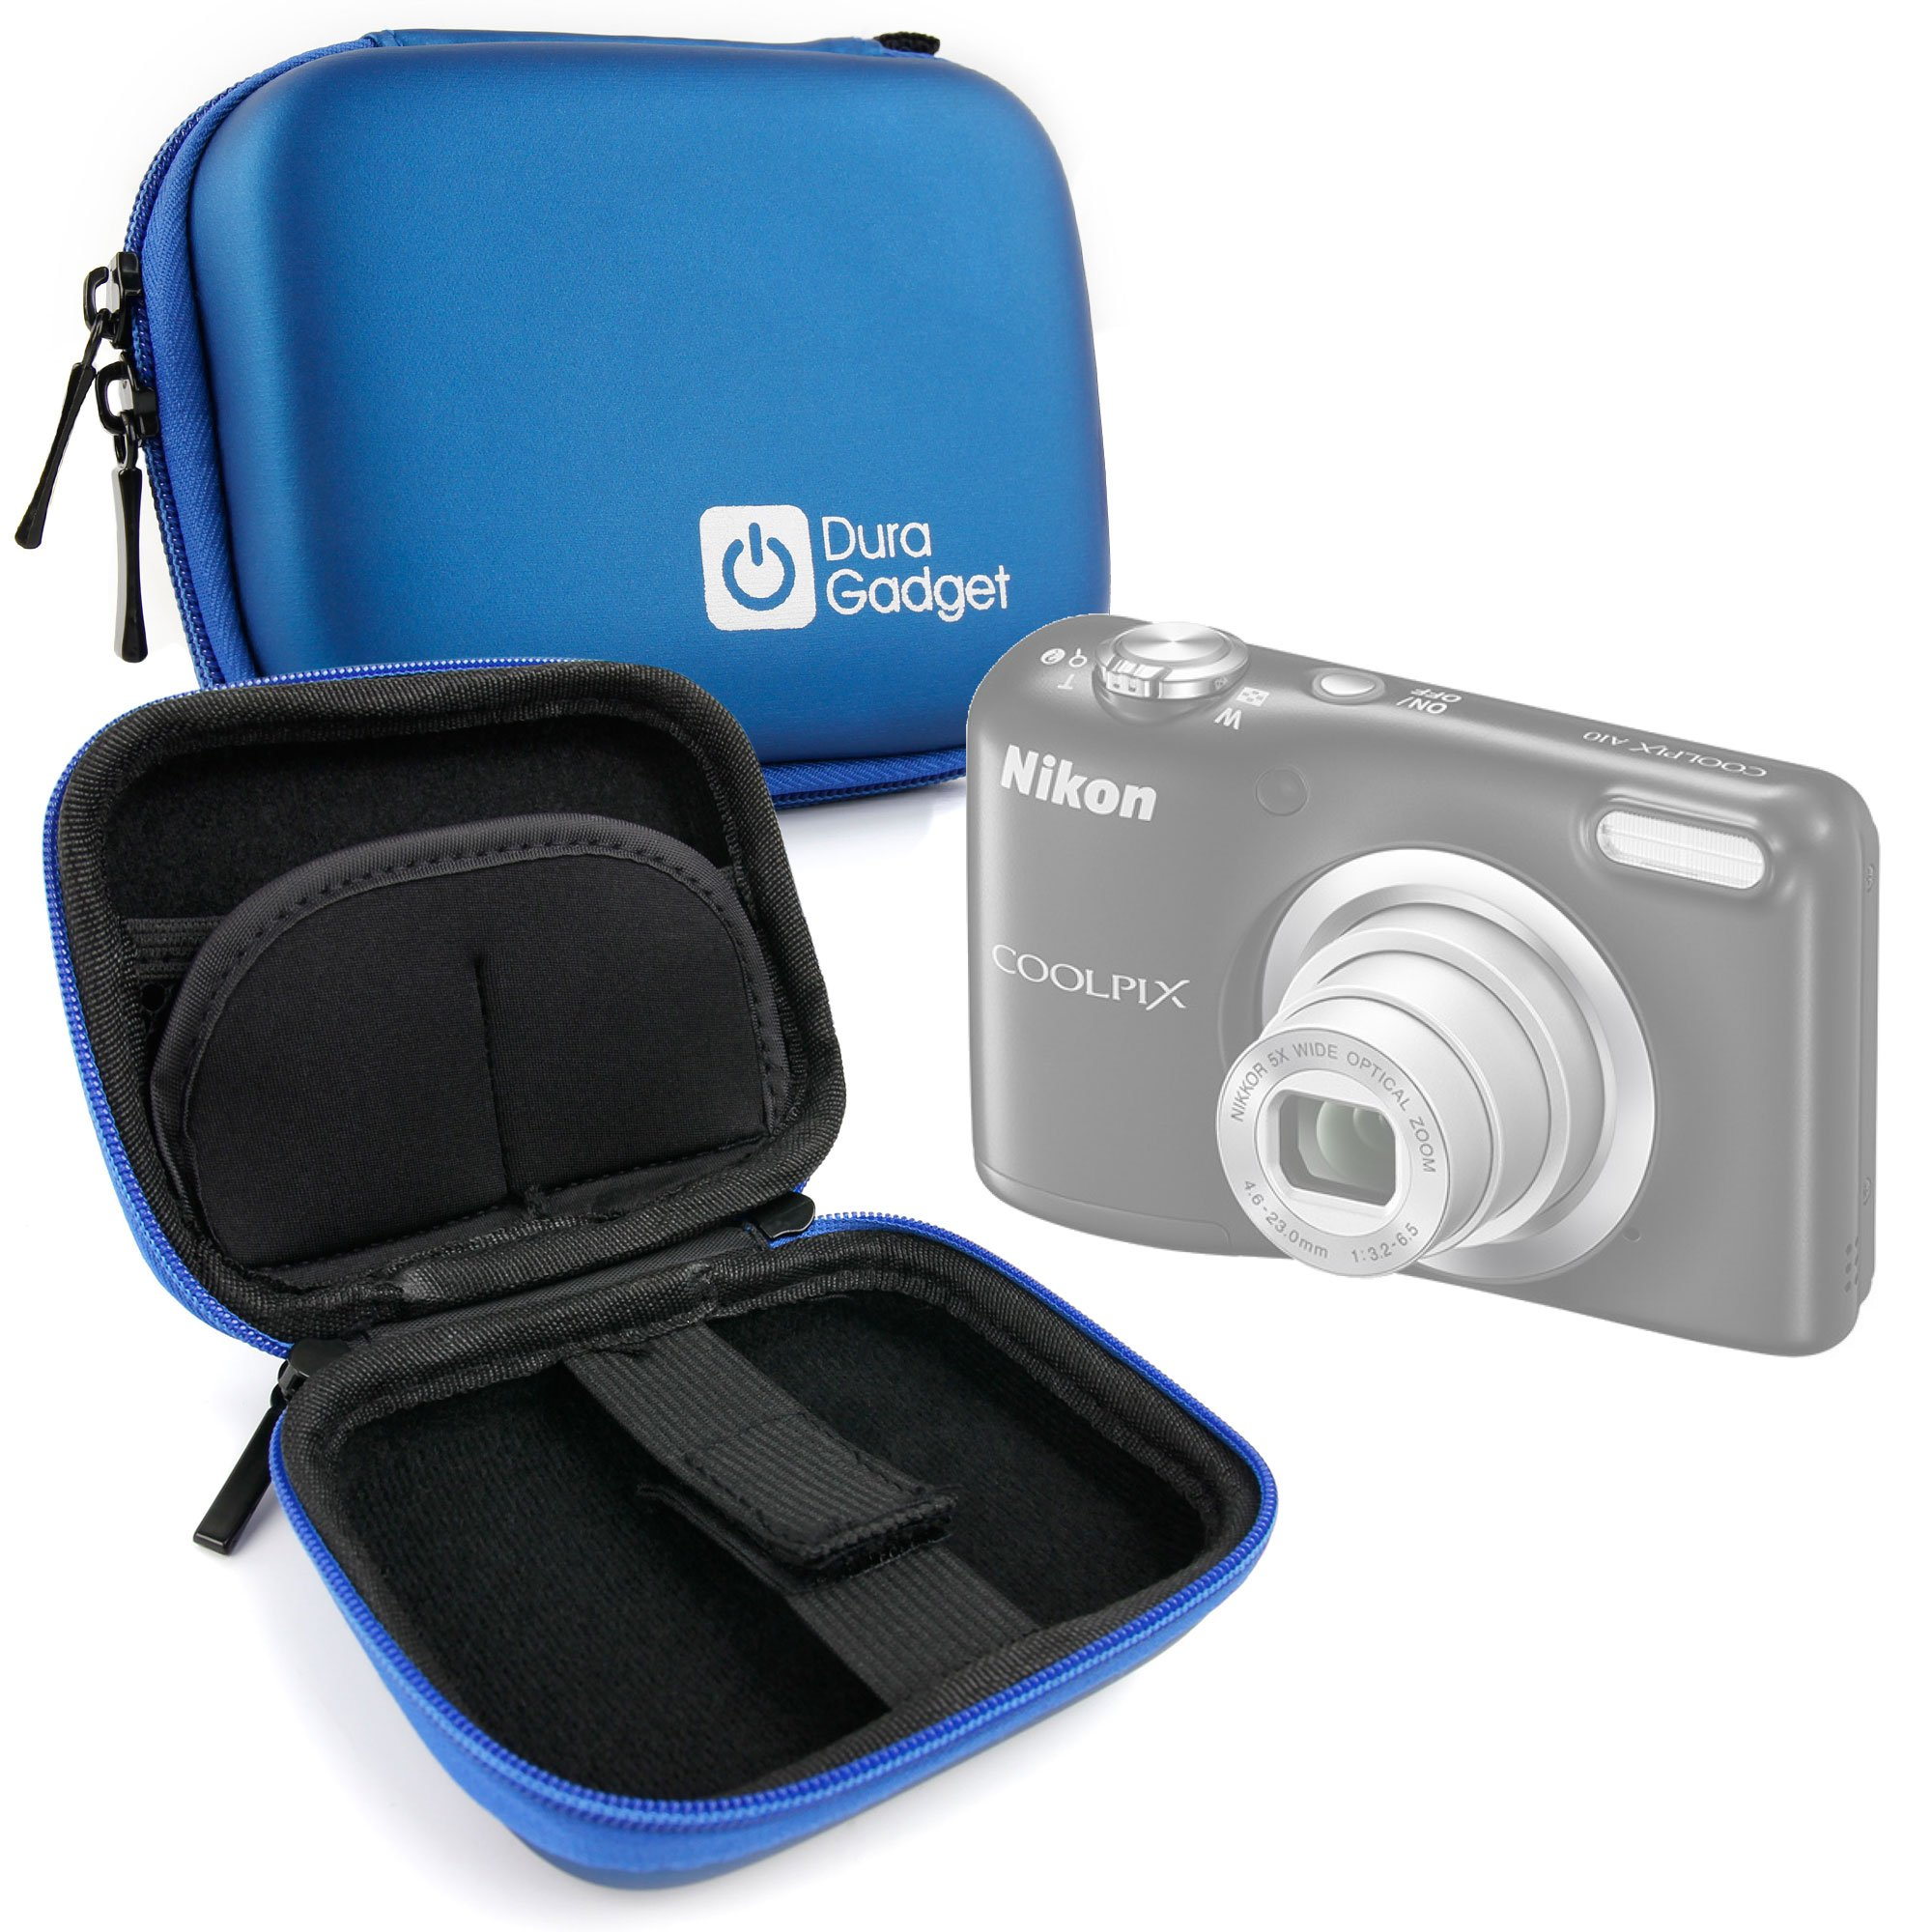 DURAGADGET Premium Quality Blue Hard EVA Shell Case with Carabiner Clip & Twin Zips - Compatible with The Nikon Coolpix A10 | A100 | W100 Compact Camera by DURAGADGET